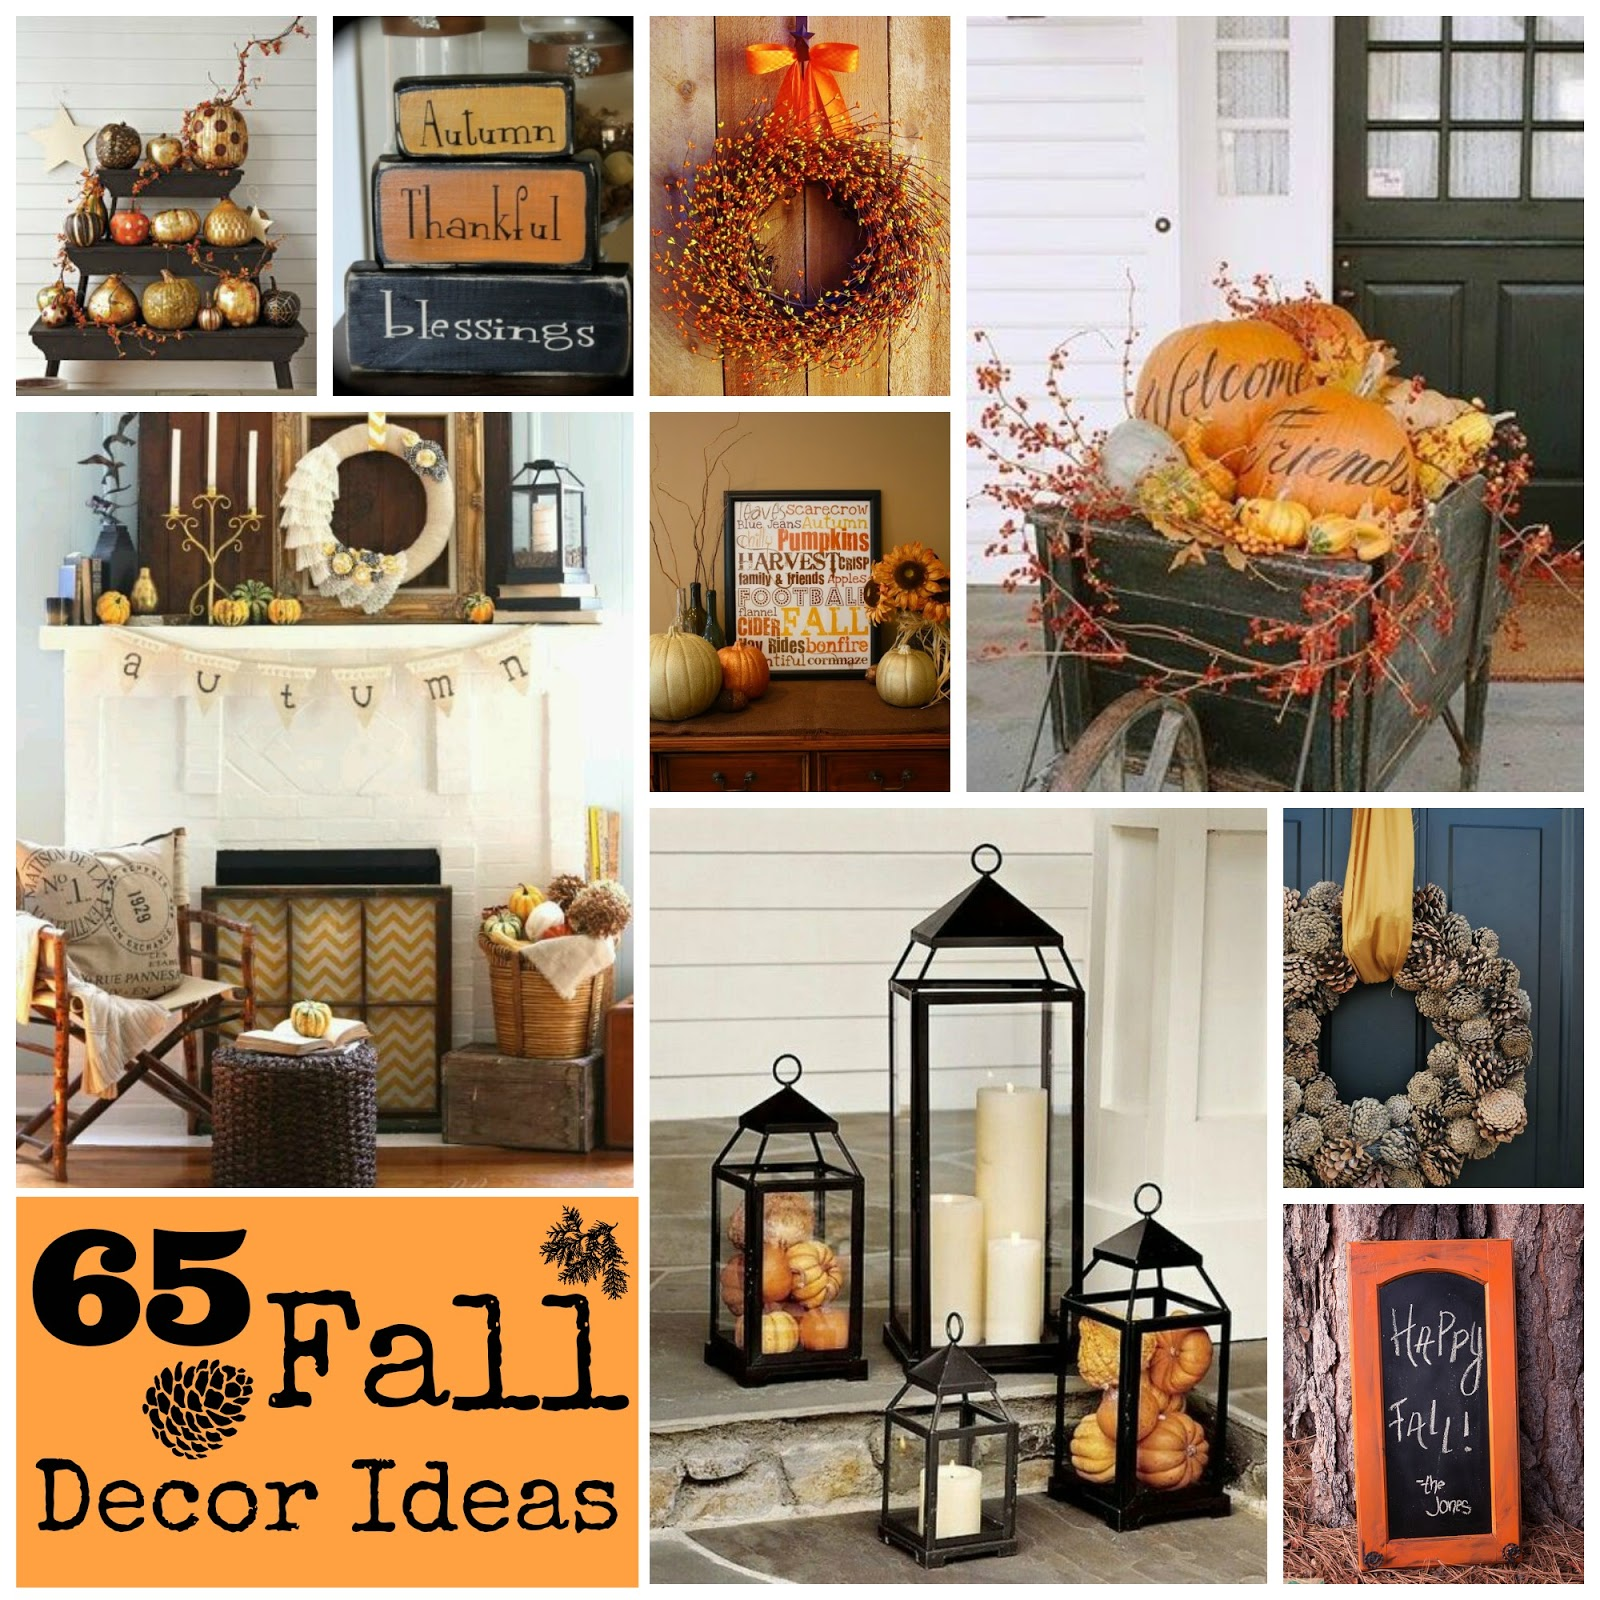 Home Remodeling For This Autumn